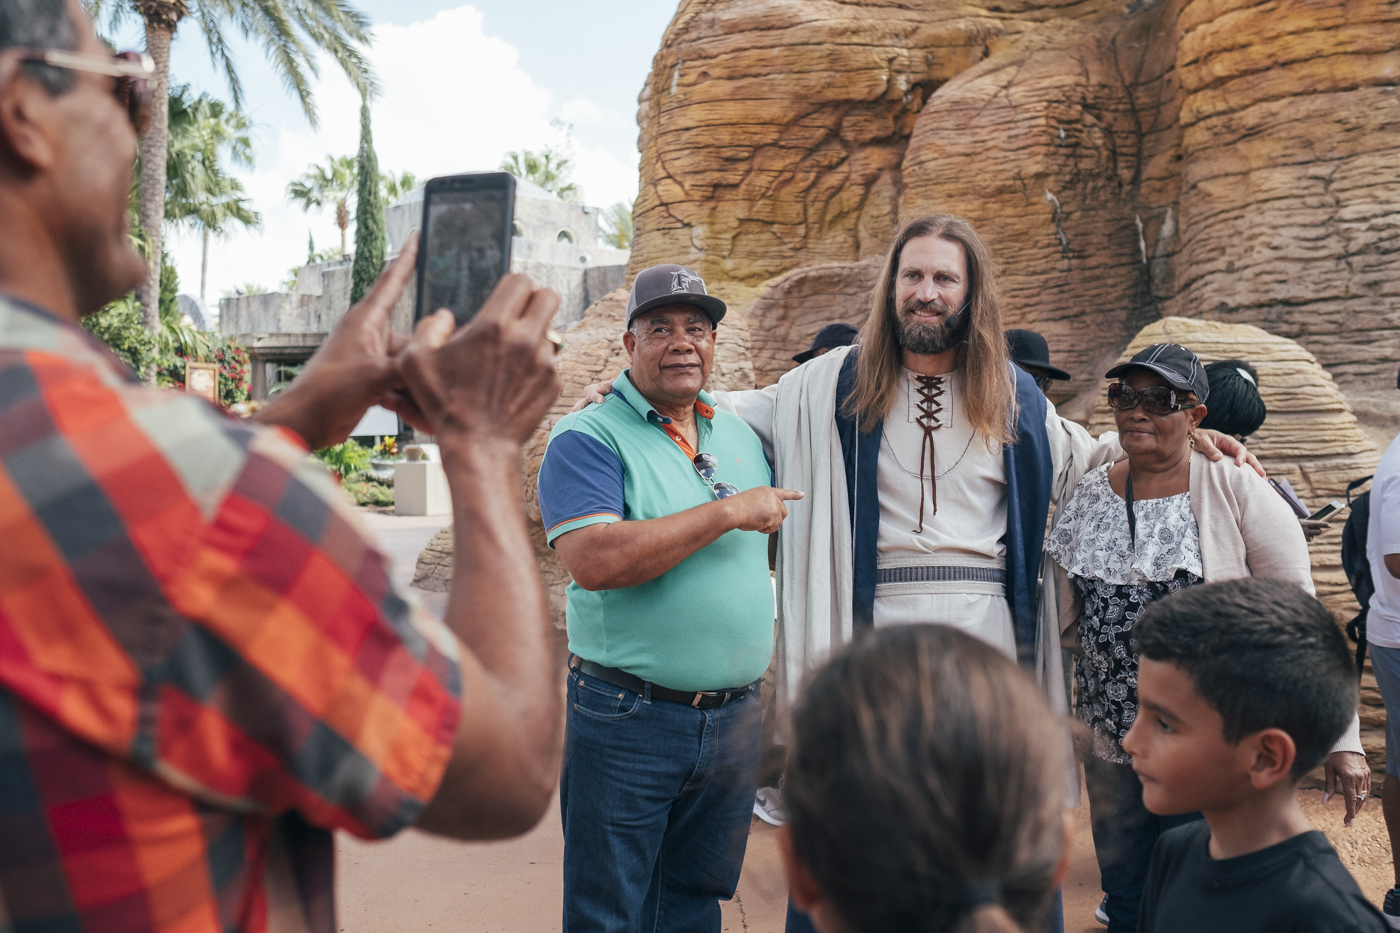 Jesus is the super star of the Holy Land Experience Park. For many visitors, touching the false messiah is a true blessing.